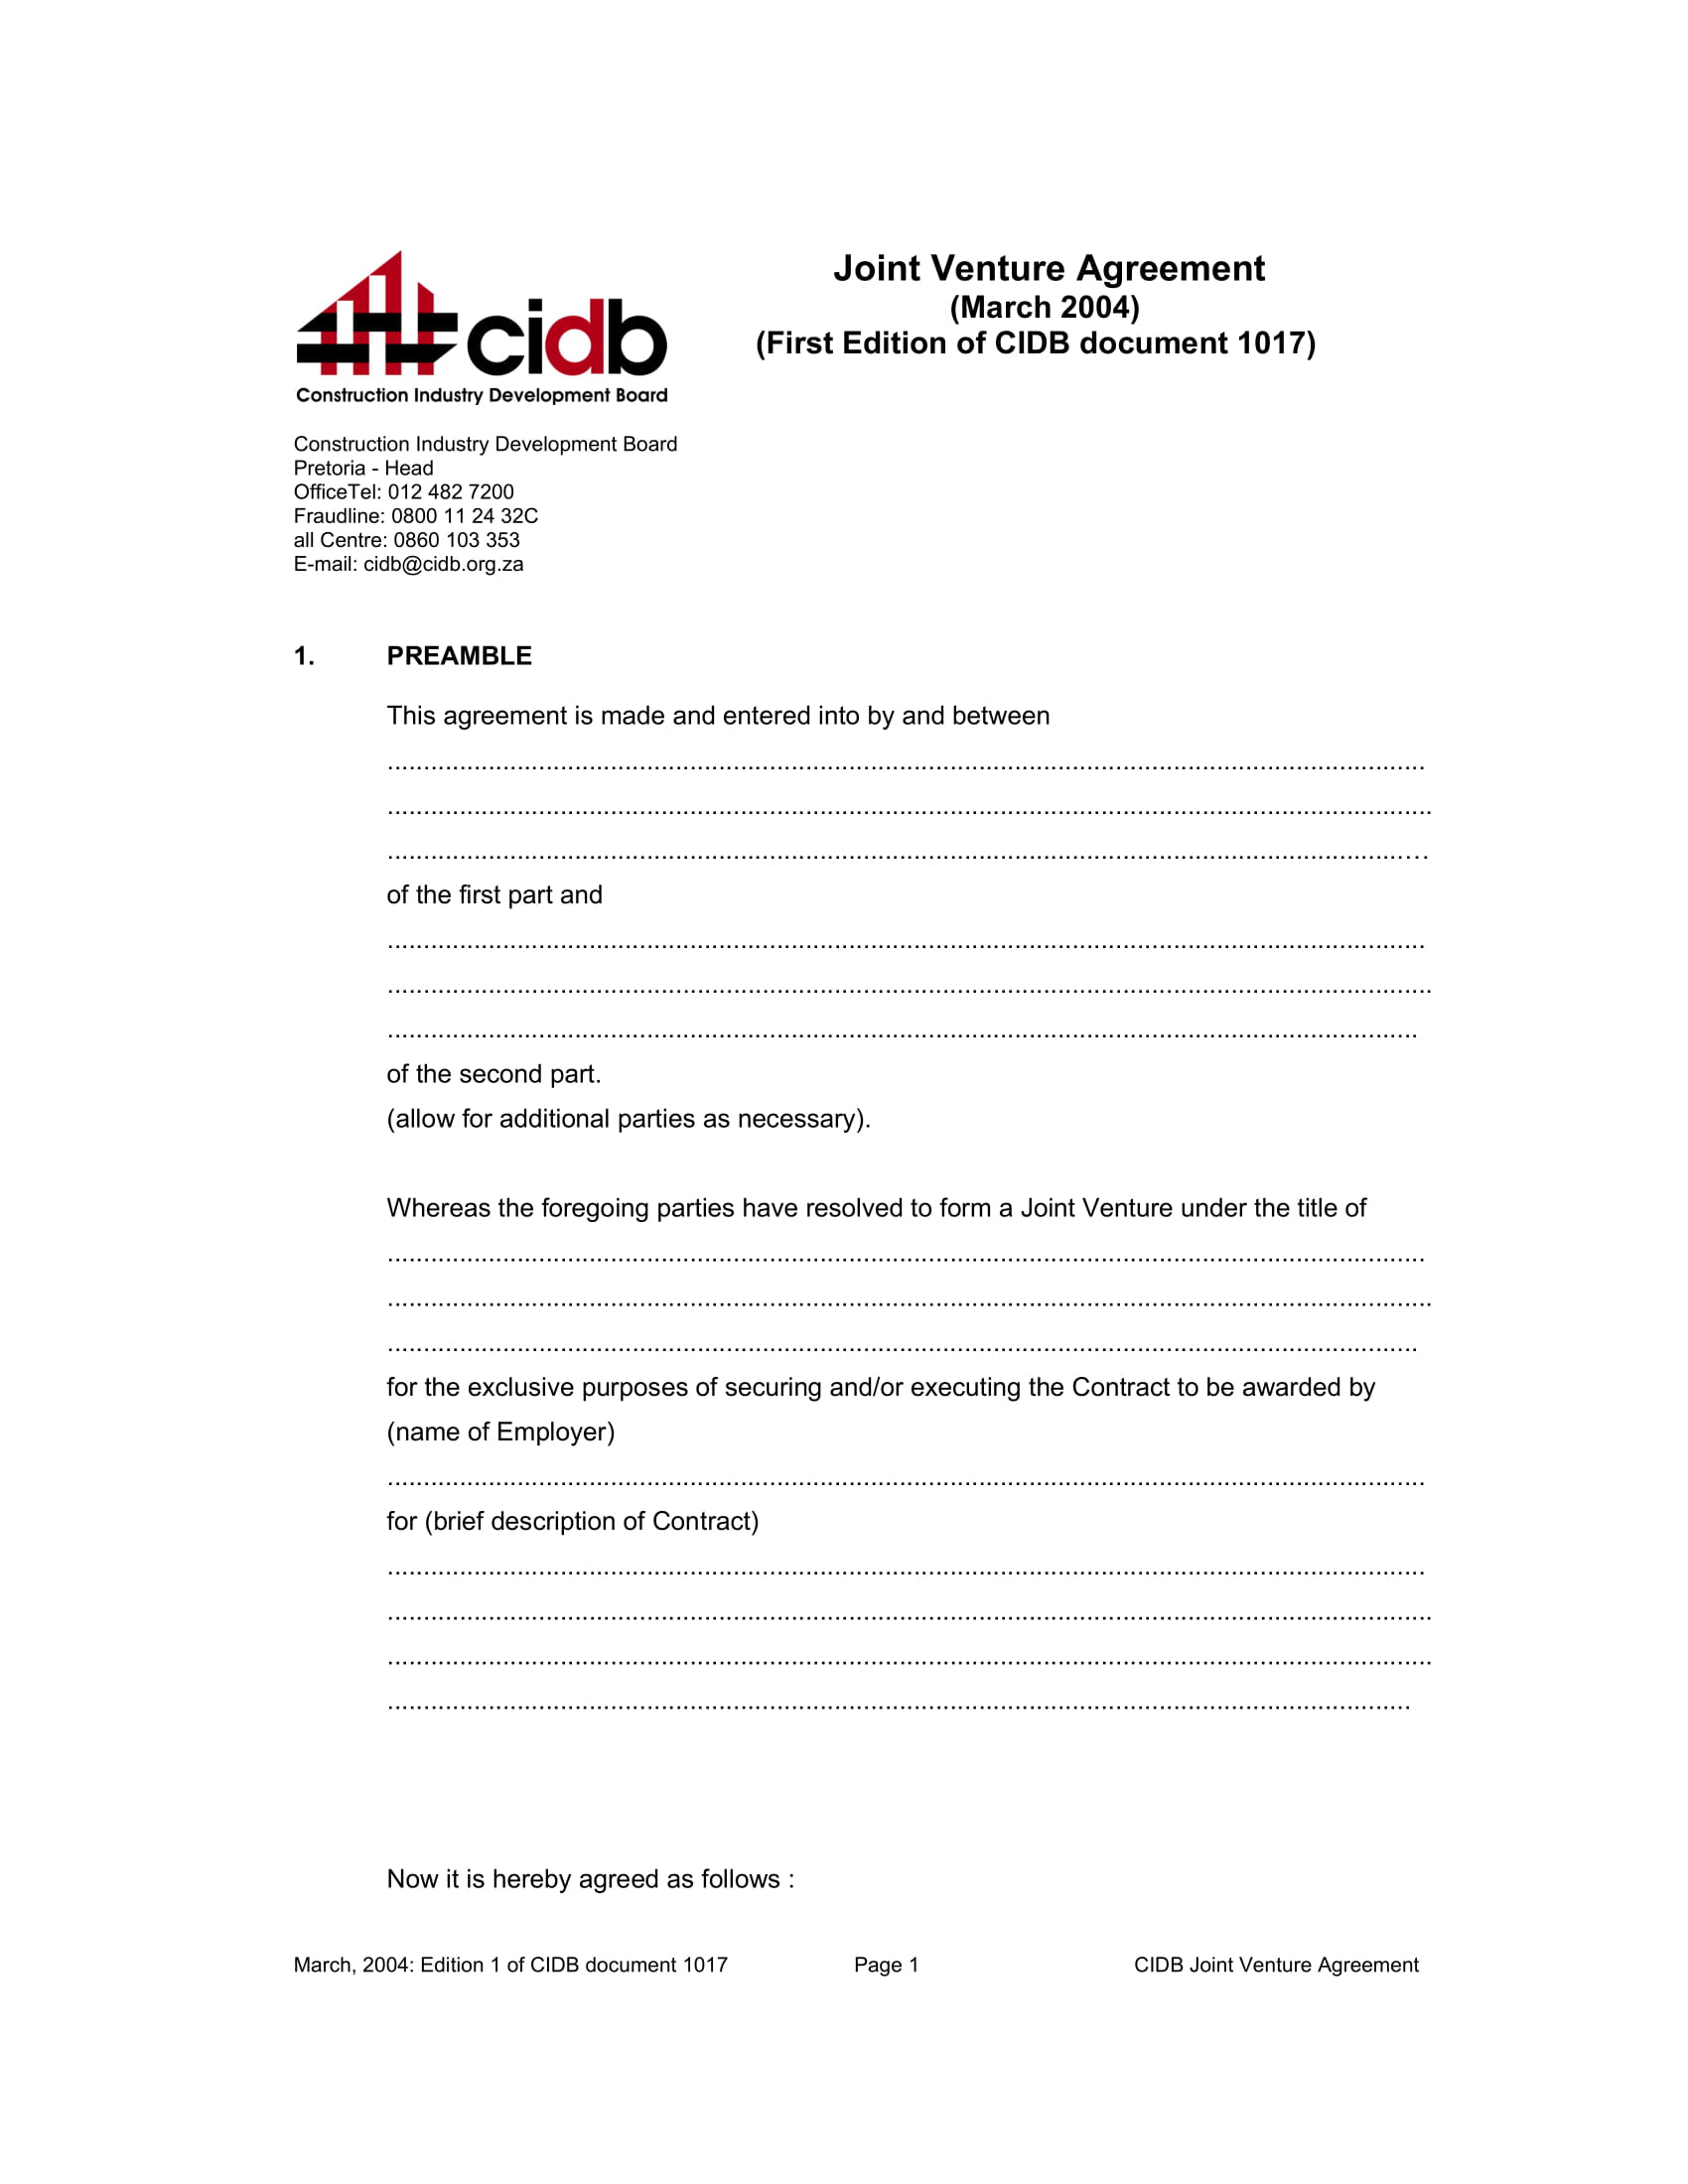 joint venture agreement contract form 1